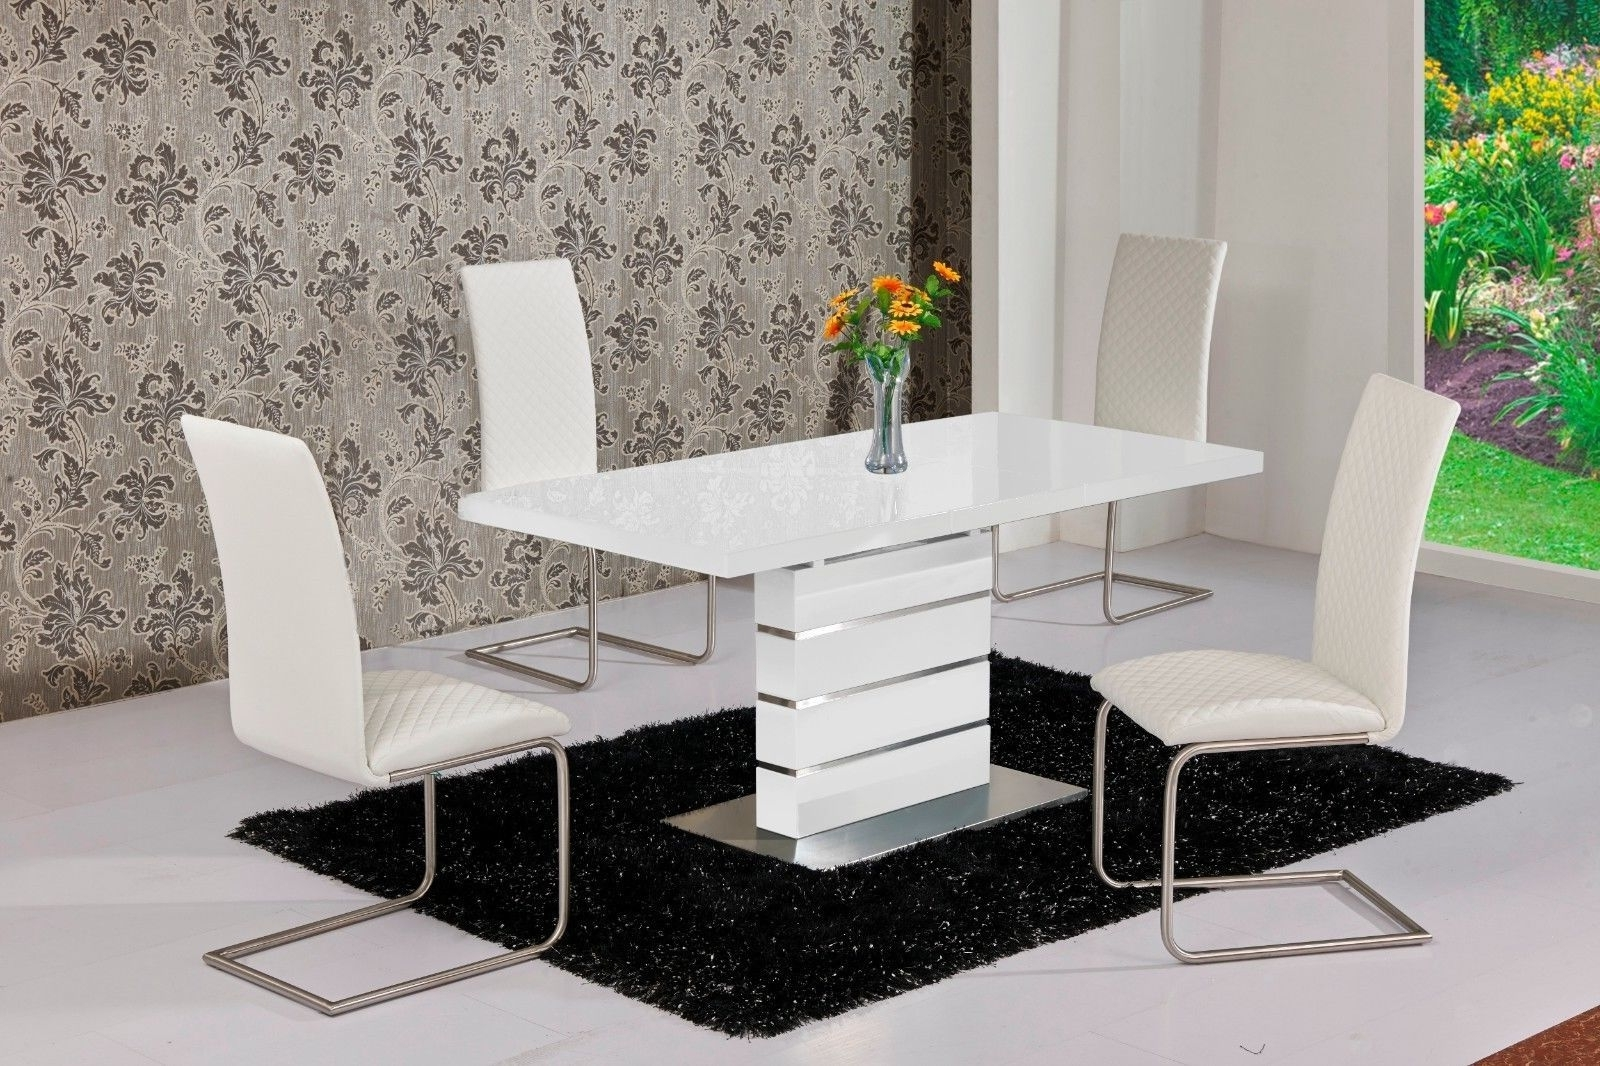 White Gloss Dining Tables 120Cm For Most Recent Mace High Gloss Extending 120 160 Dining Table & Chair Set – White (View 5 of 25)